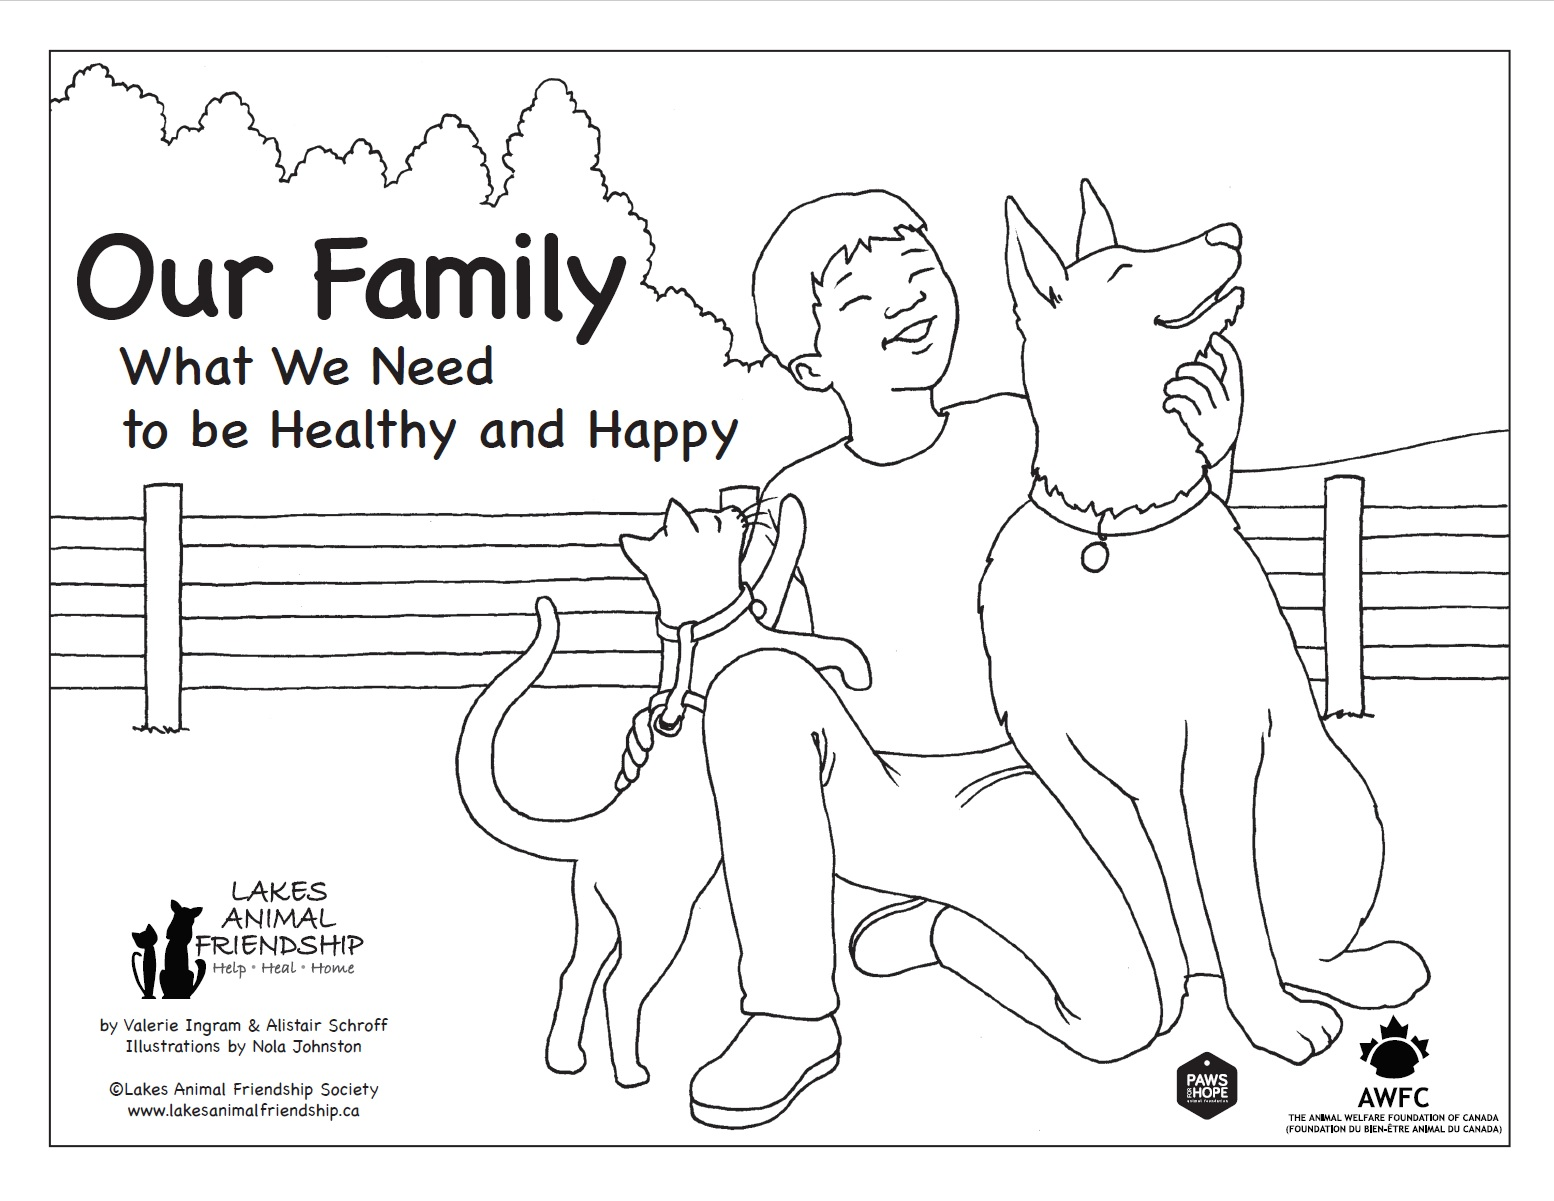 Our Family: What We Need to be Healthy and Happy colouring book